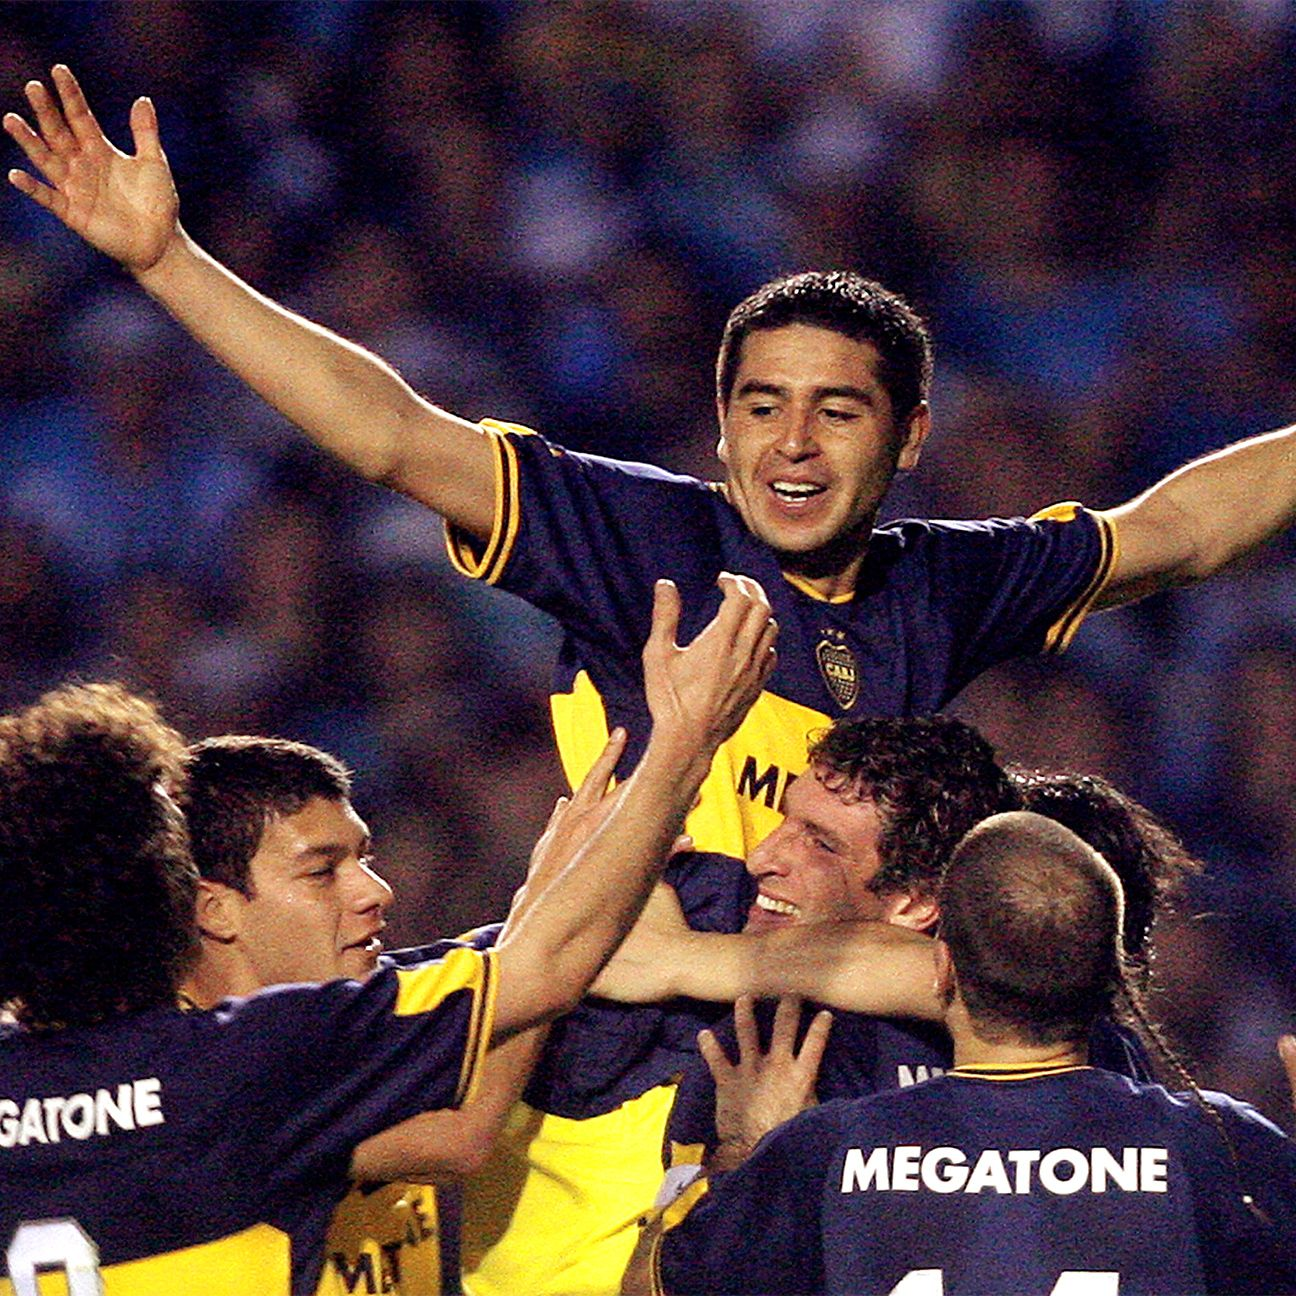 Juan Roman Riquelme guided Boca Juniors to Copa Libertadores glory in 2007 just a year after reaching the Champions League semifinals with Villarreal.